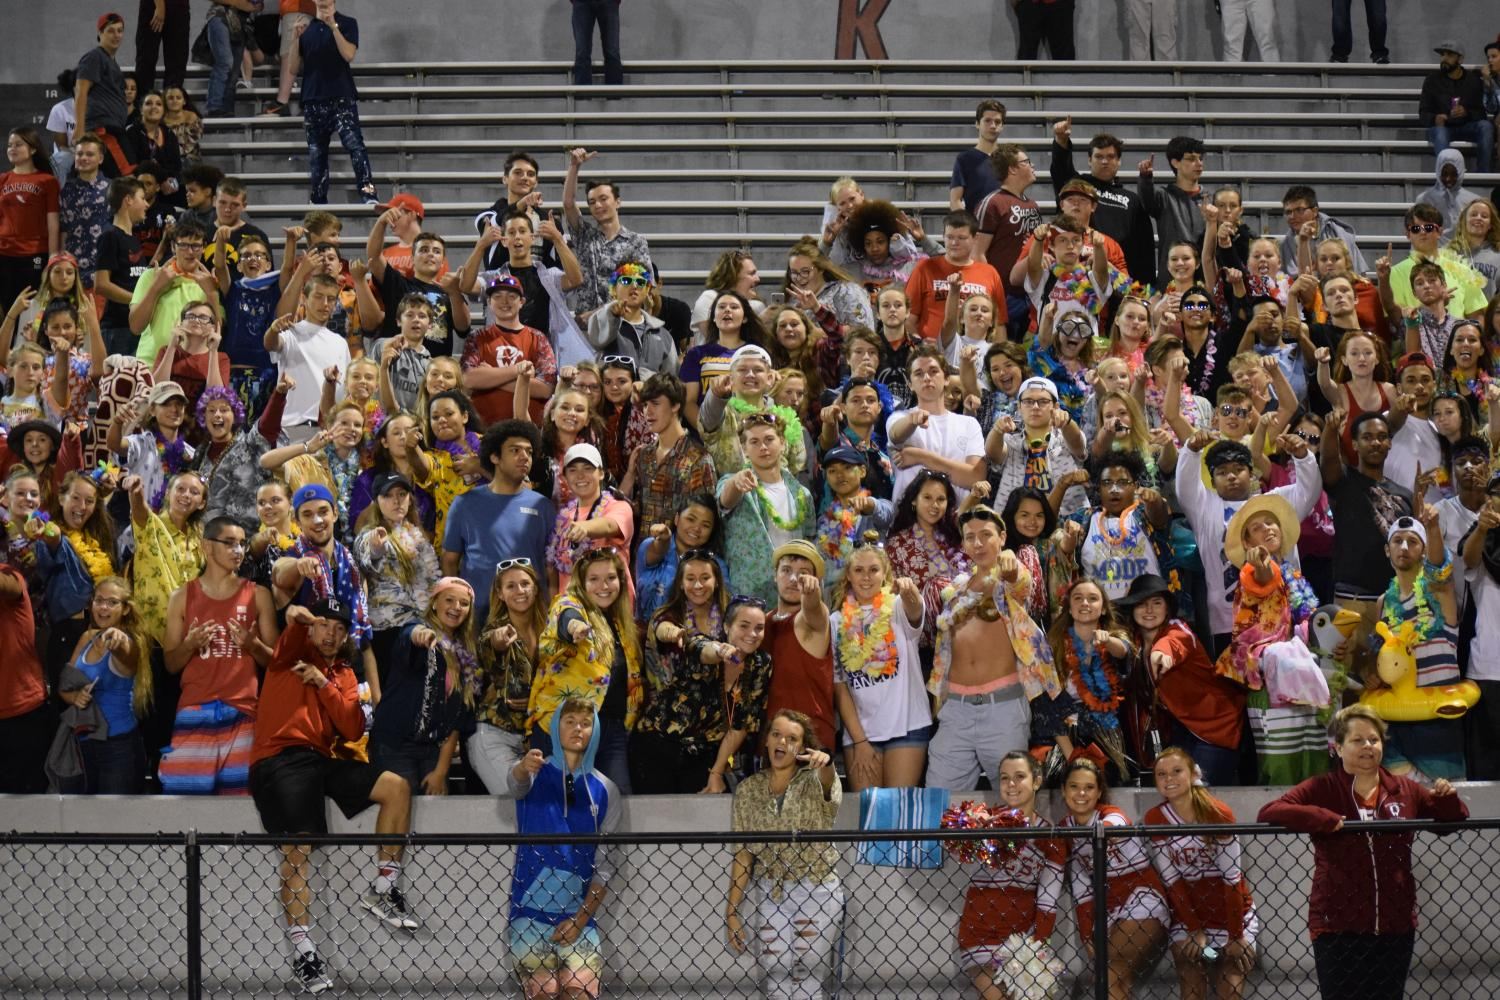 The students all dressed in the theme 'beach' to show unity and support for the football team.